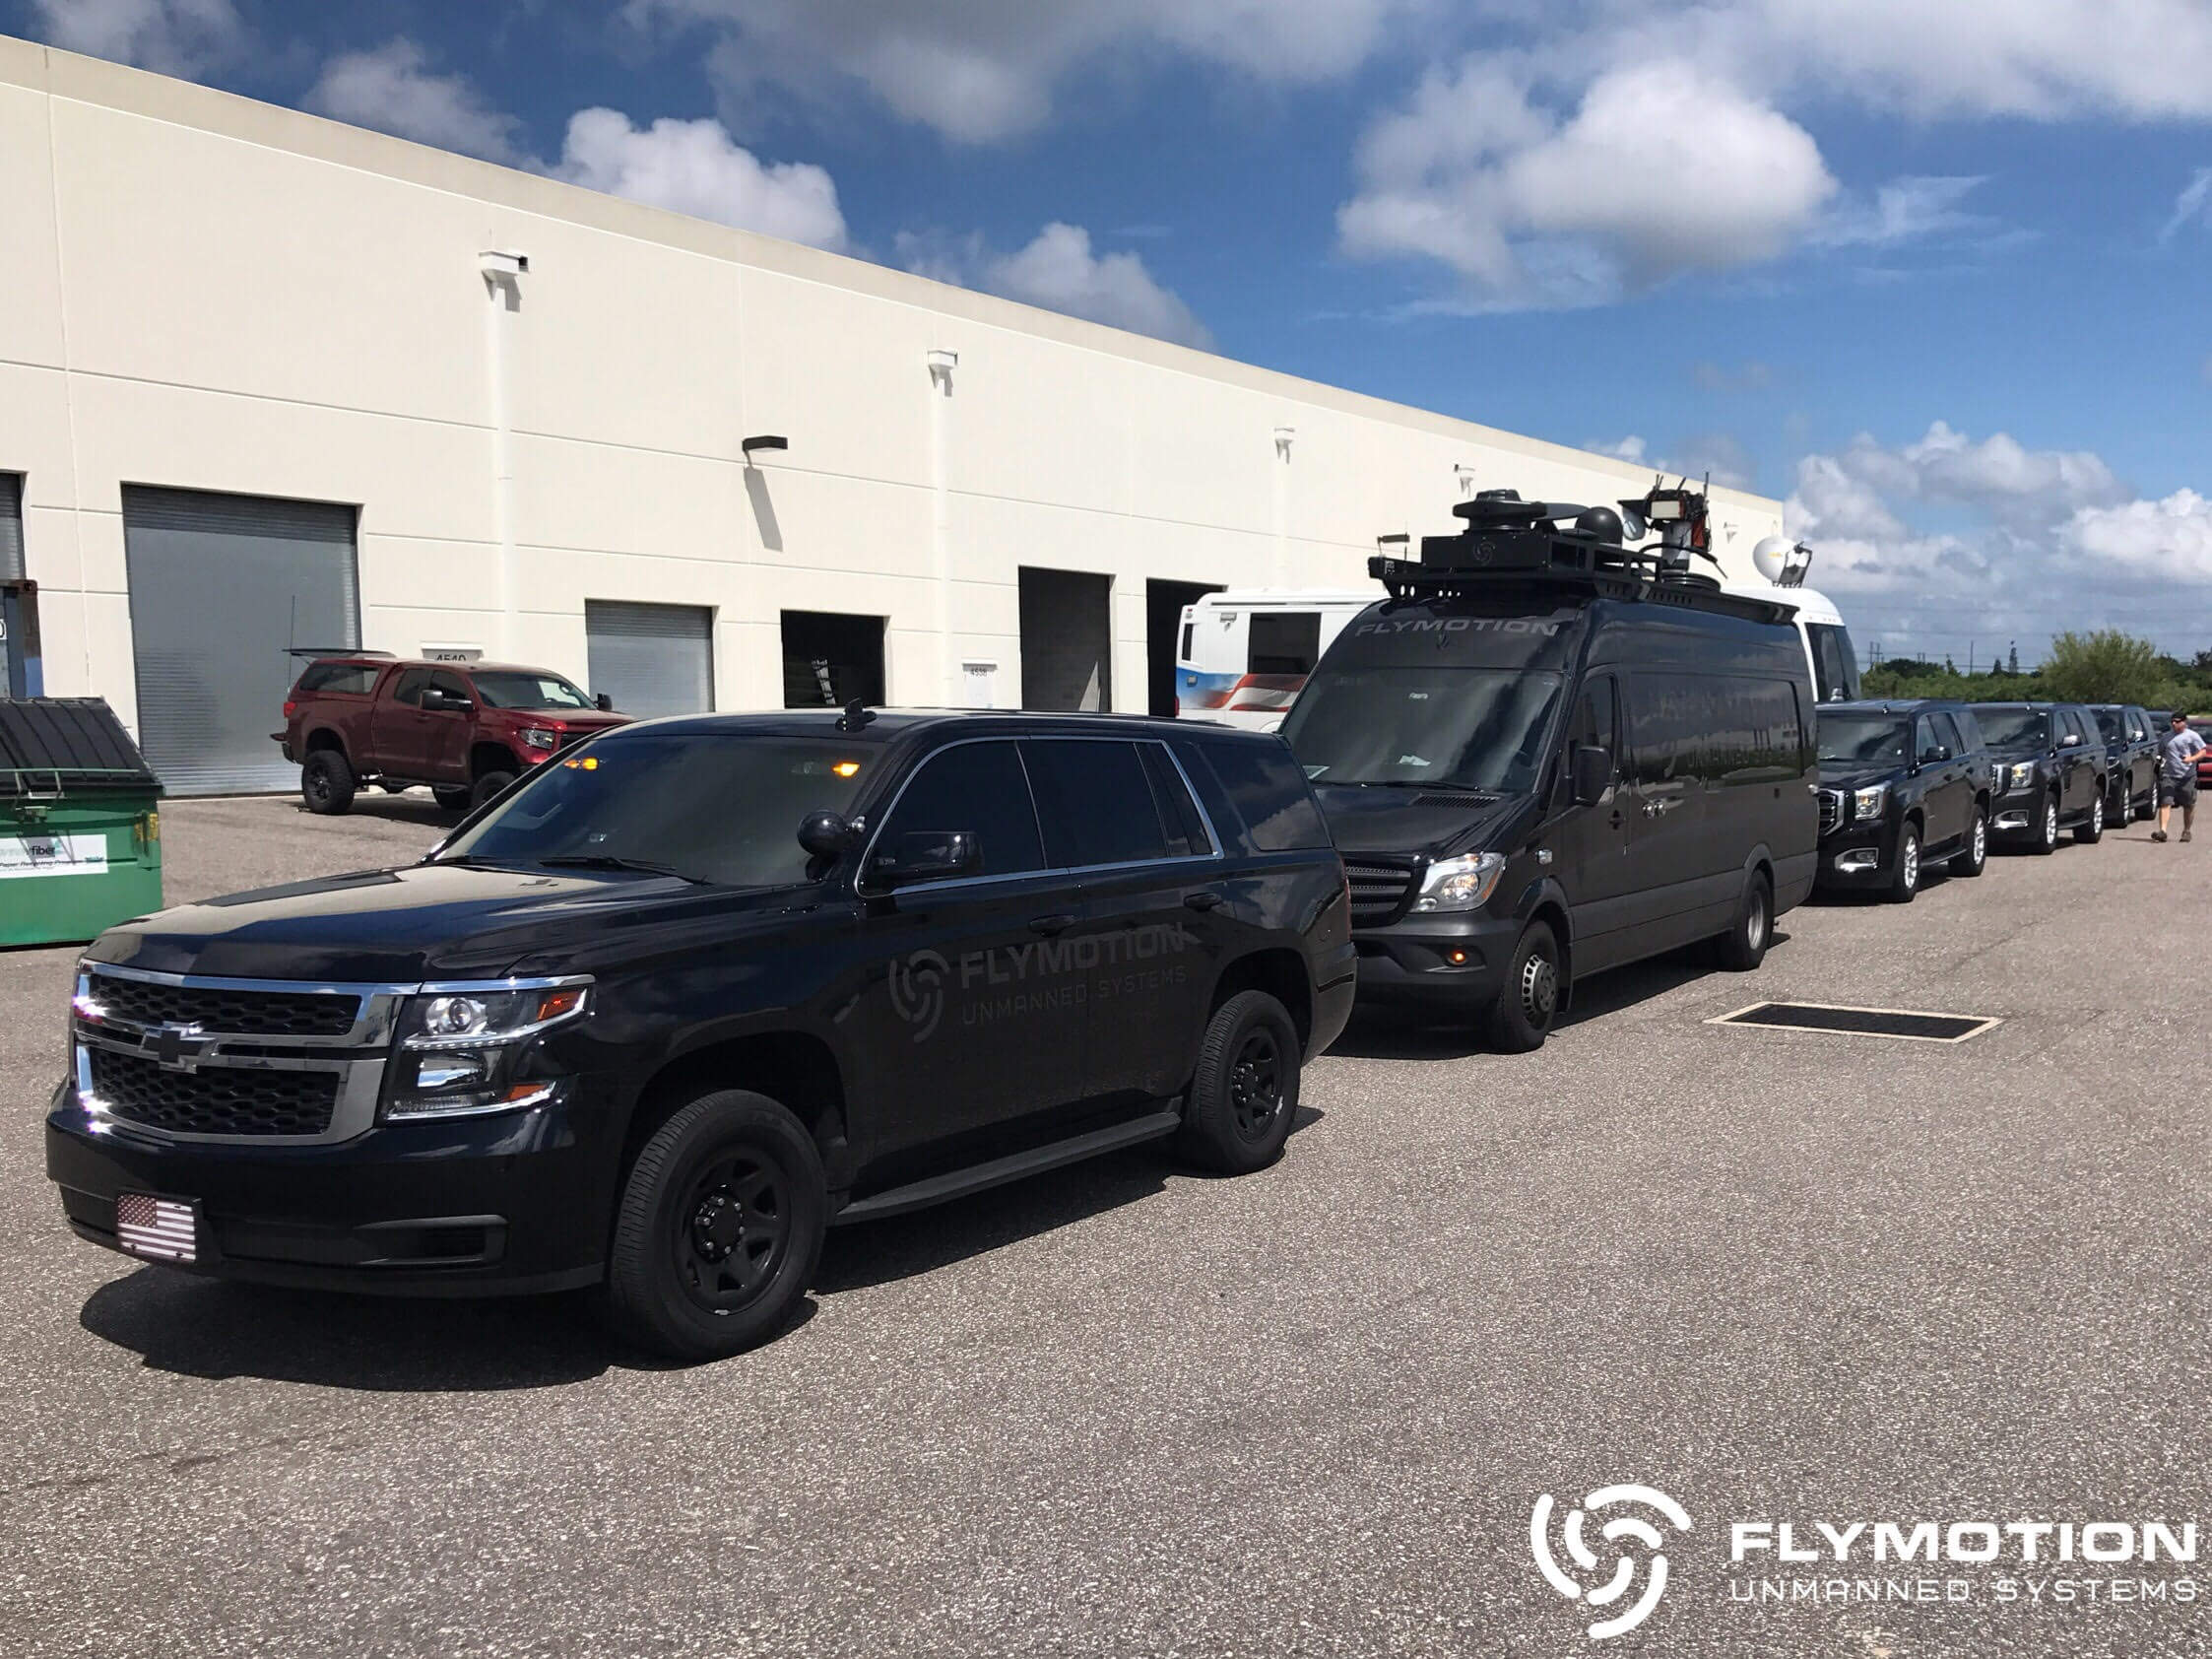 flymotion unmanned systems